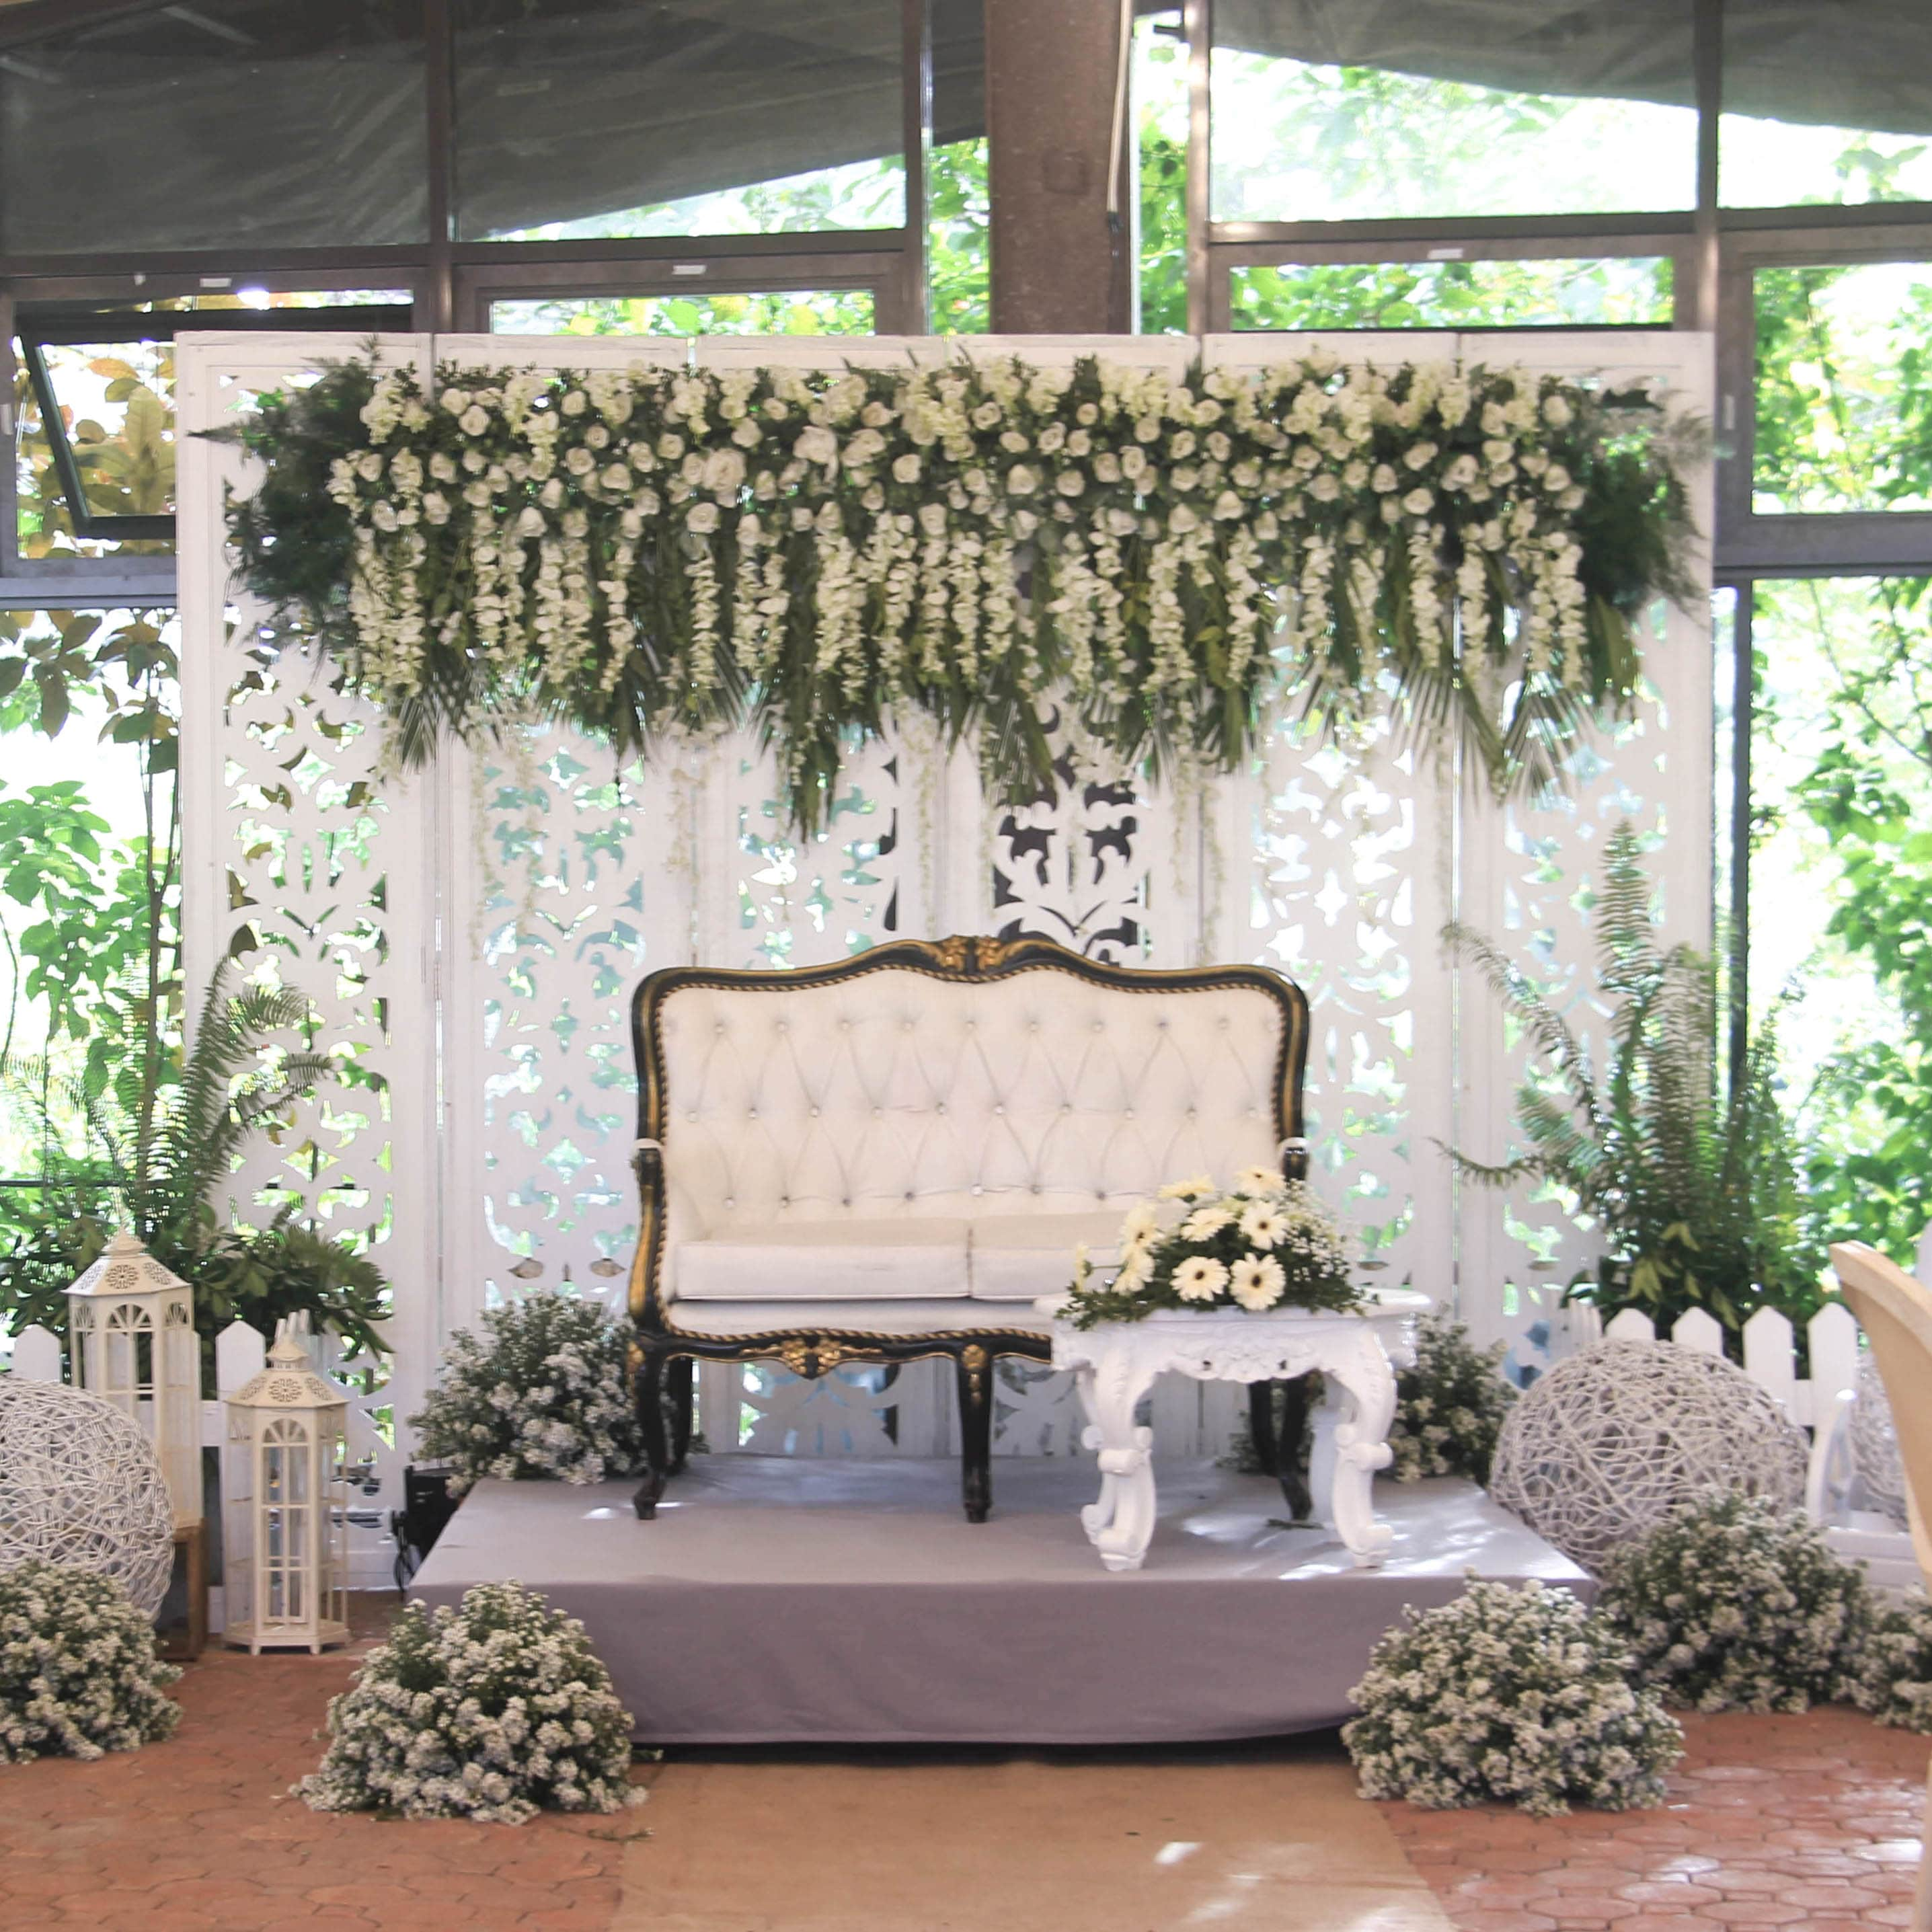 towns-delight-catering-venue-the-glens-tagaytay-cavite-8